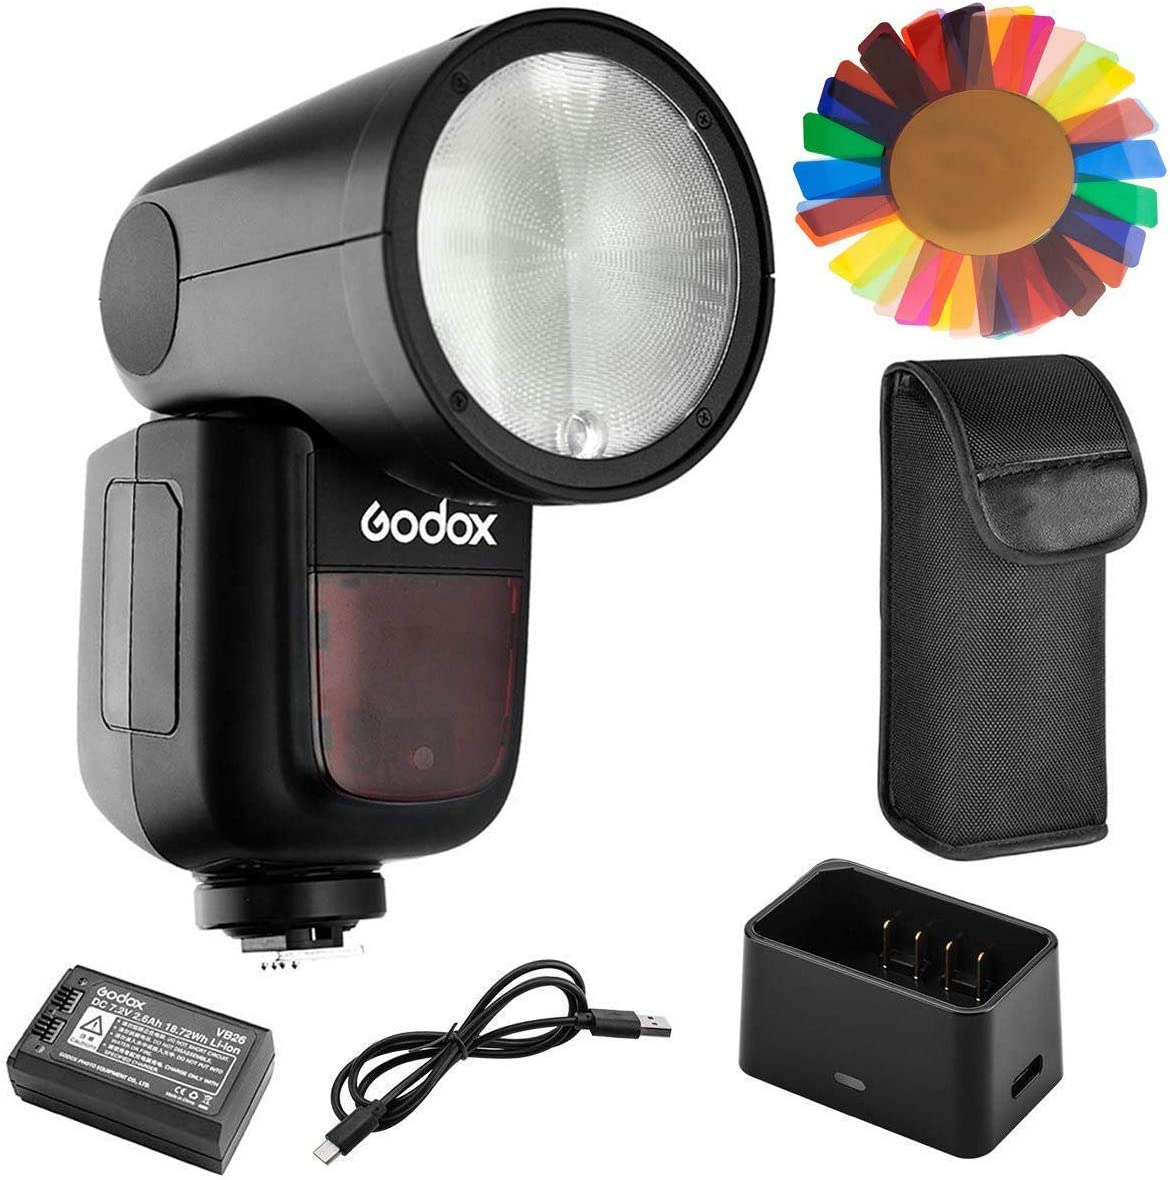 Godox V1-C Flash for Canon, 76Ws 2.4G TTL Round Head Flash Speedlight, 1/8000 HSS, 480 Full Power Shots, 1.5s Recycle Time, 2600mAh Lithium Battery, 10 Level LED Modeling Lamp, W/Pergear Color Filters